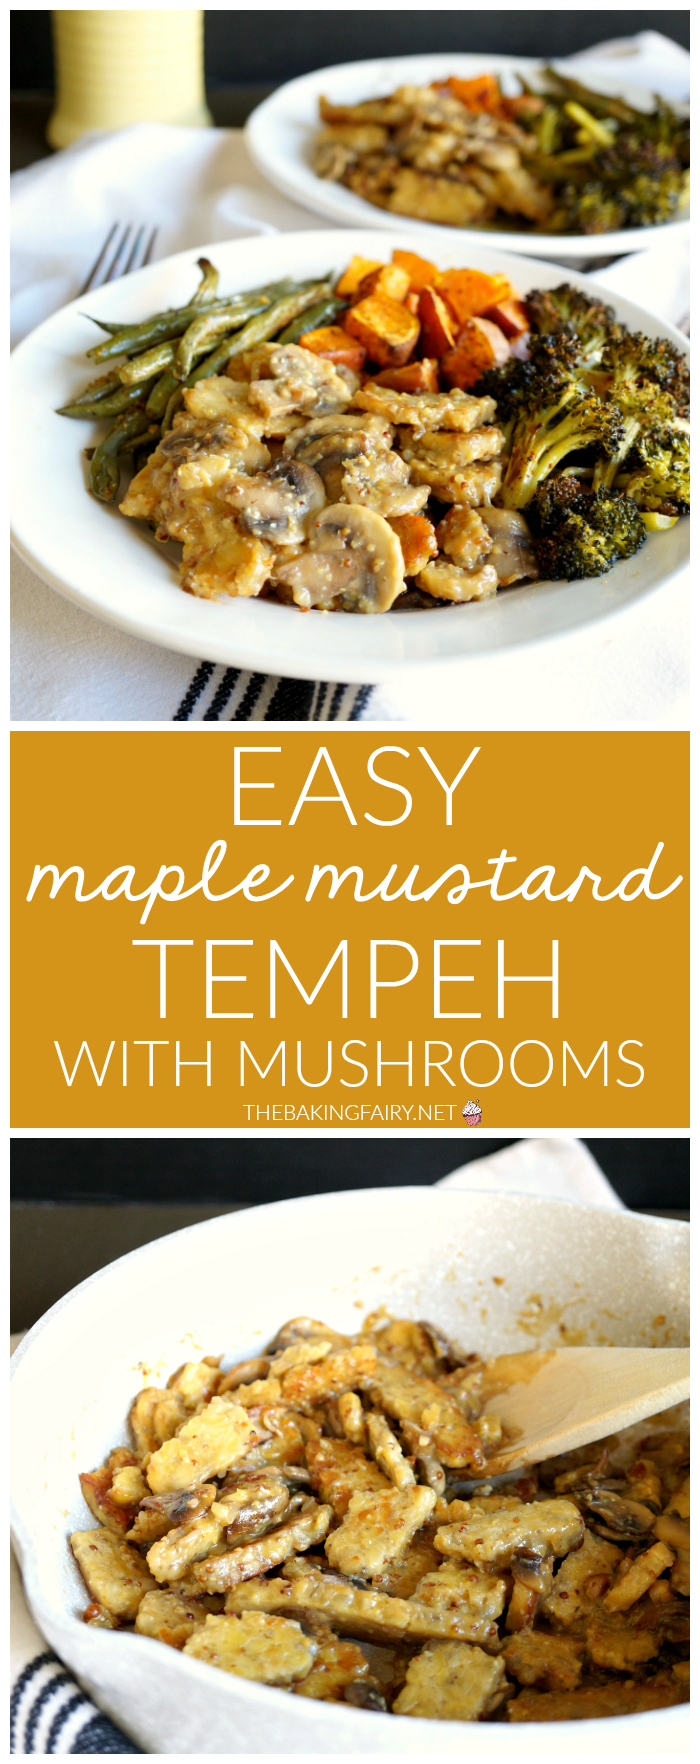 easy maple mustard tempeh with mushrooms   The Baking Fairy